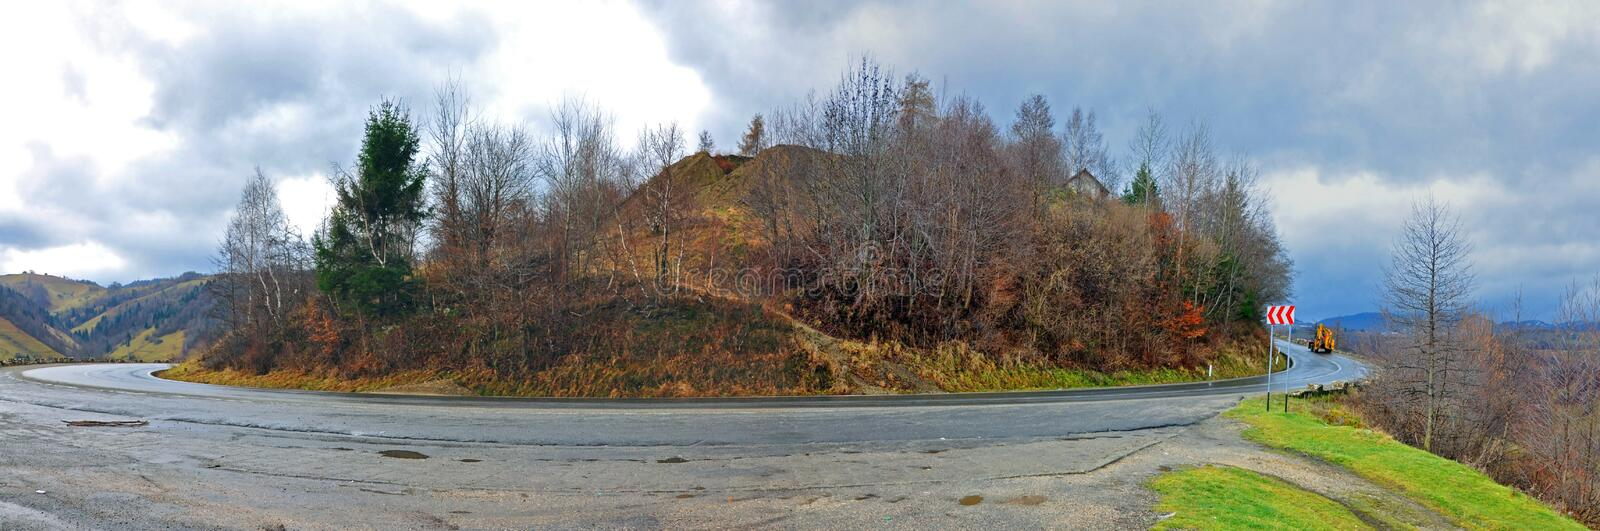 Wet mountain 180 degree traffic royalty free stock photography